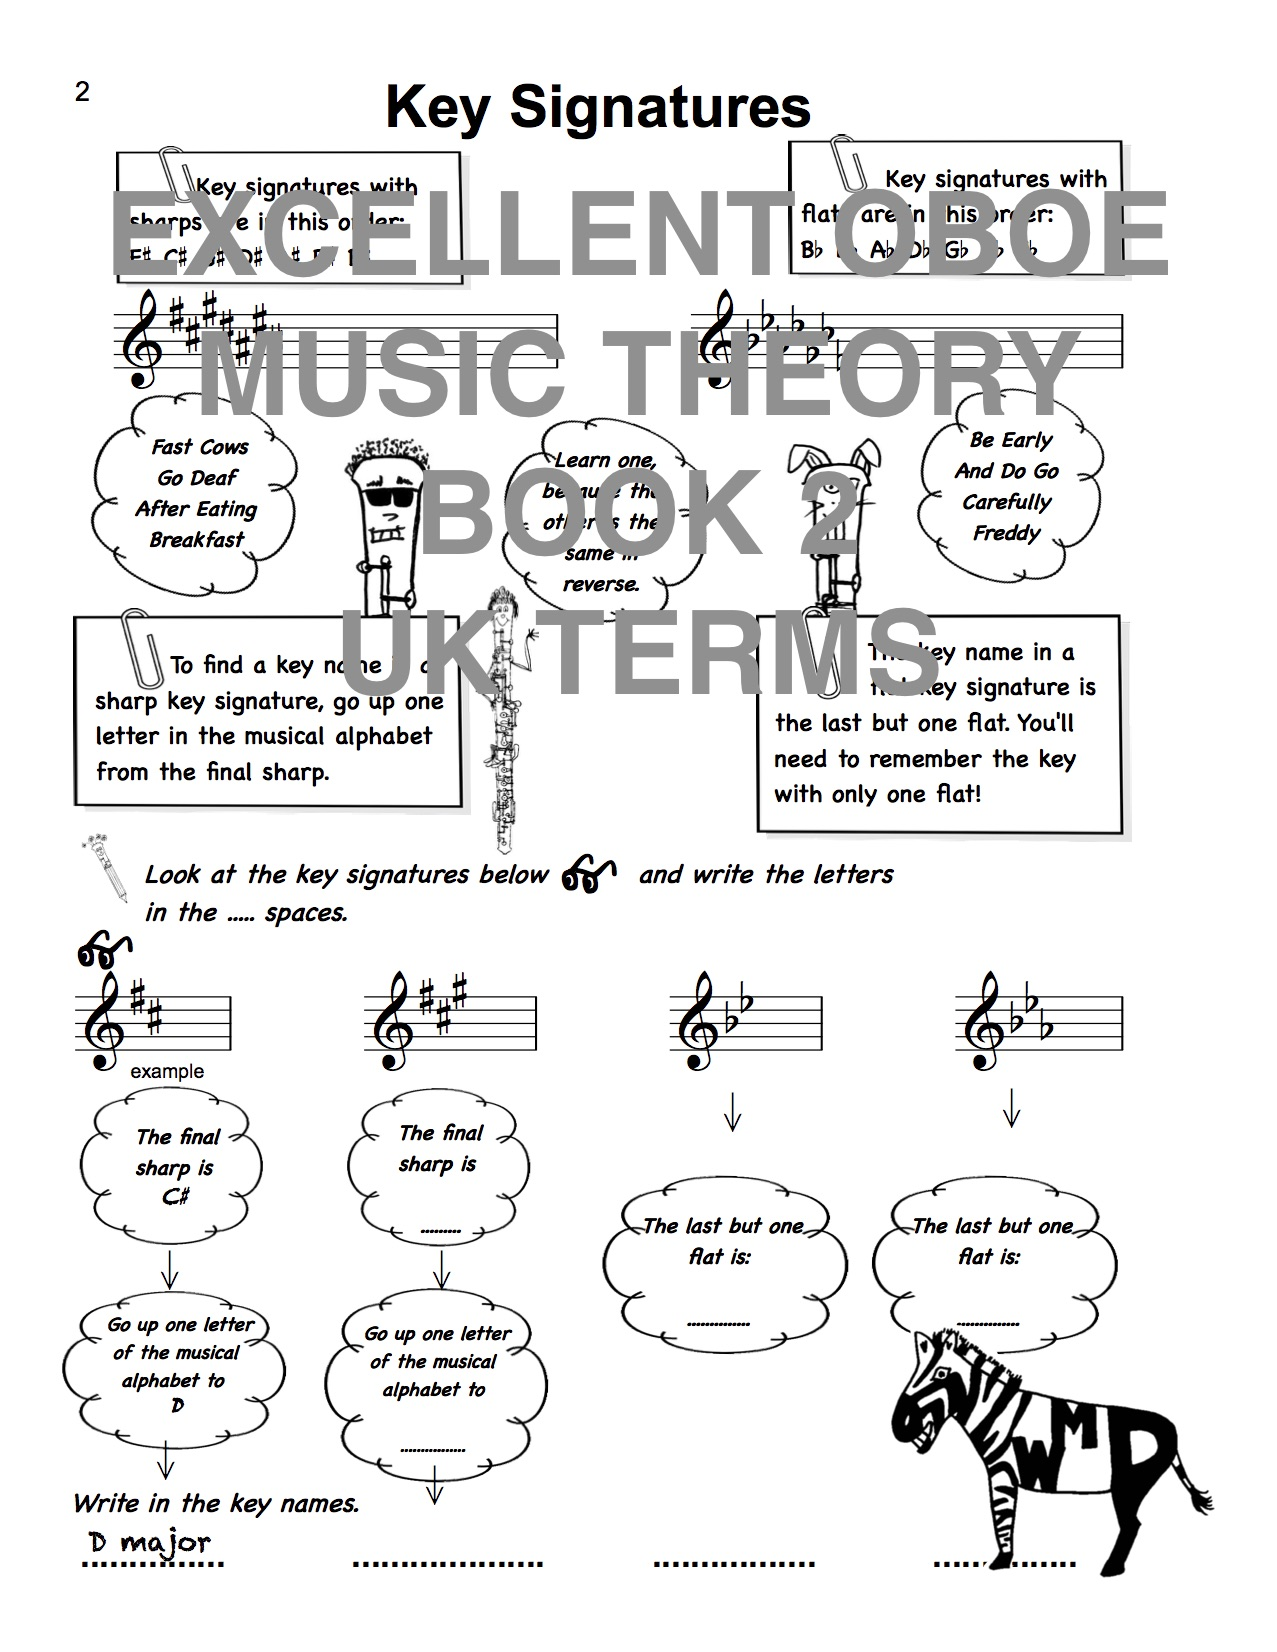 The Excellent Oboe Music Theory Book 2